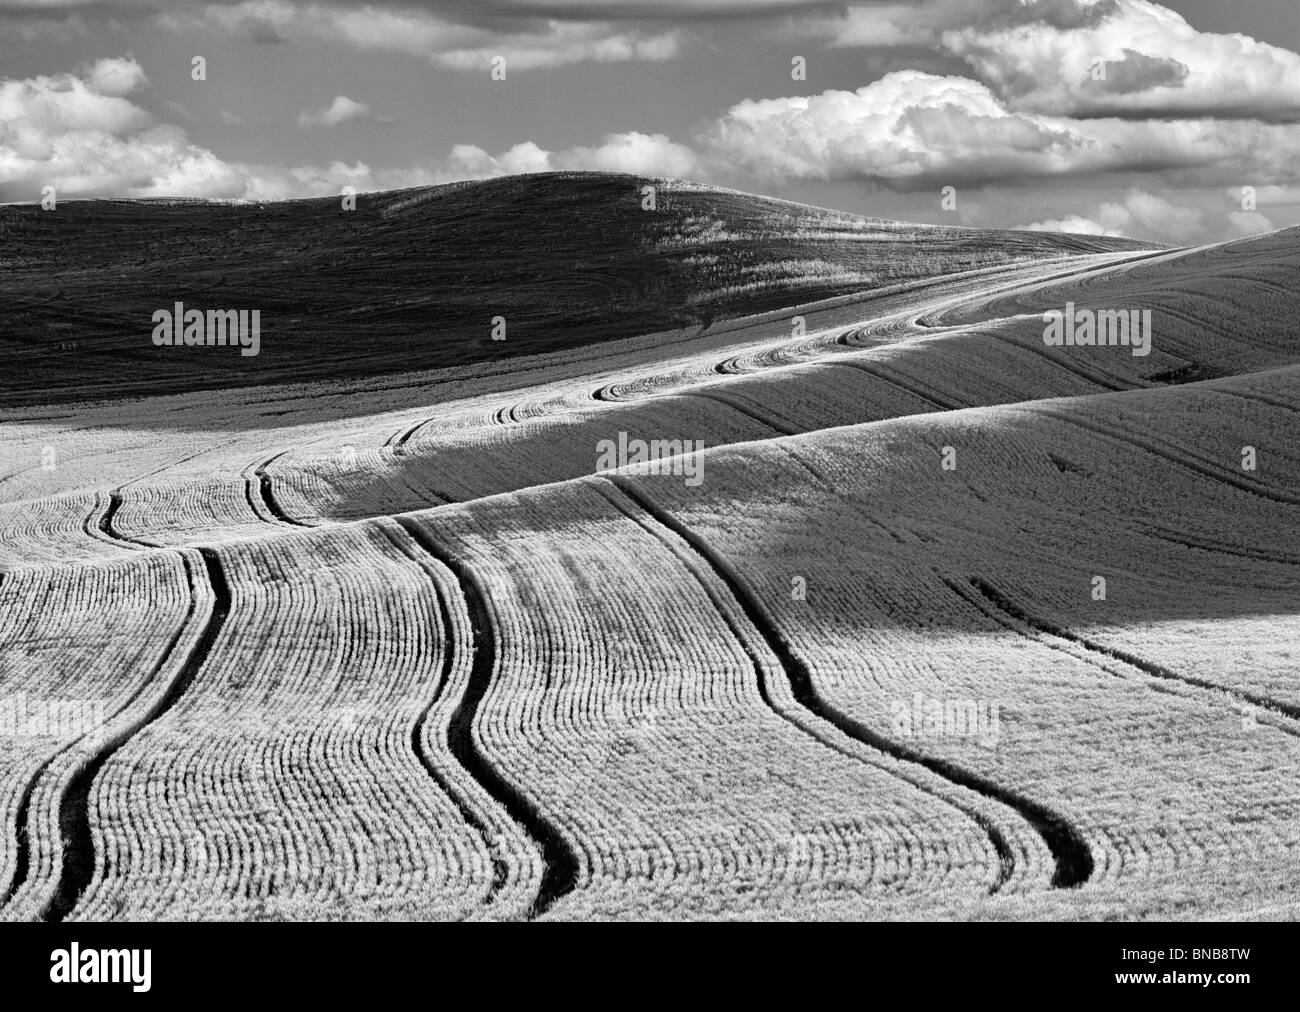 Planting lines in wheat field. The Palouse, Washington. A sky has been added. - Stock Image